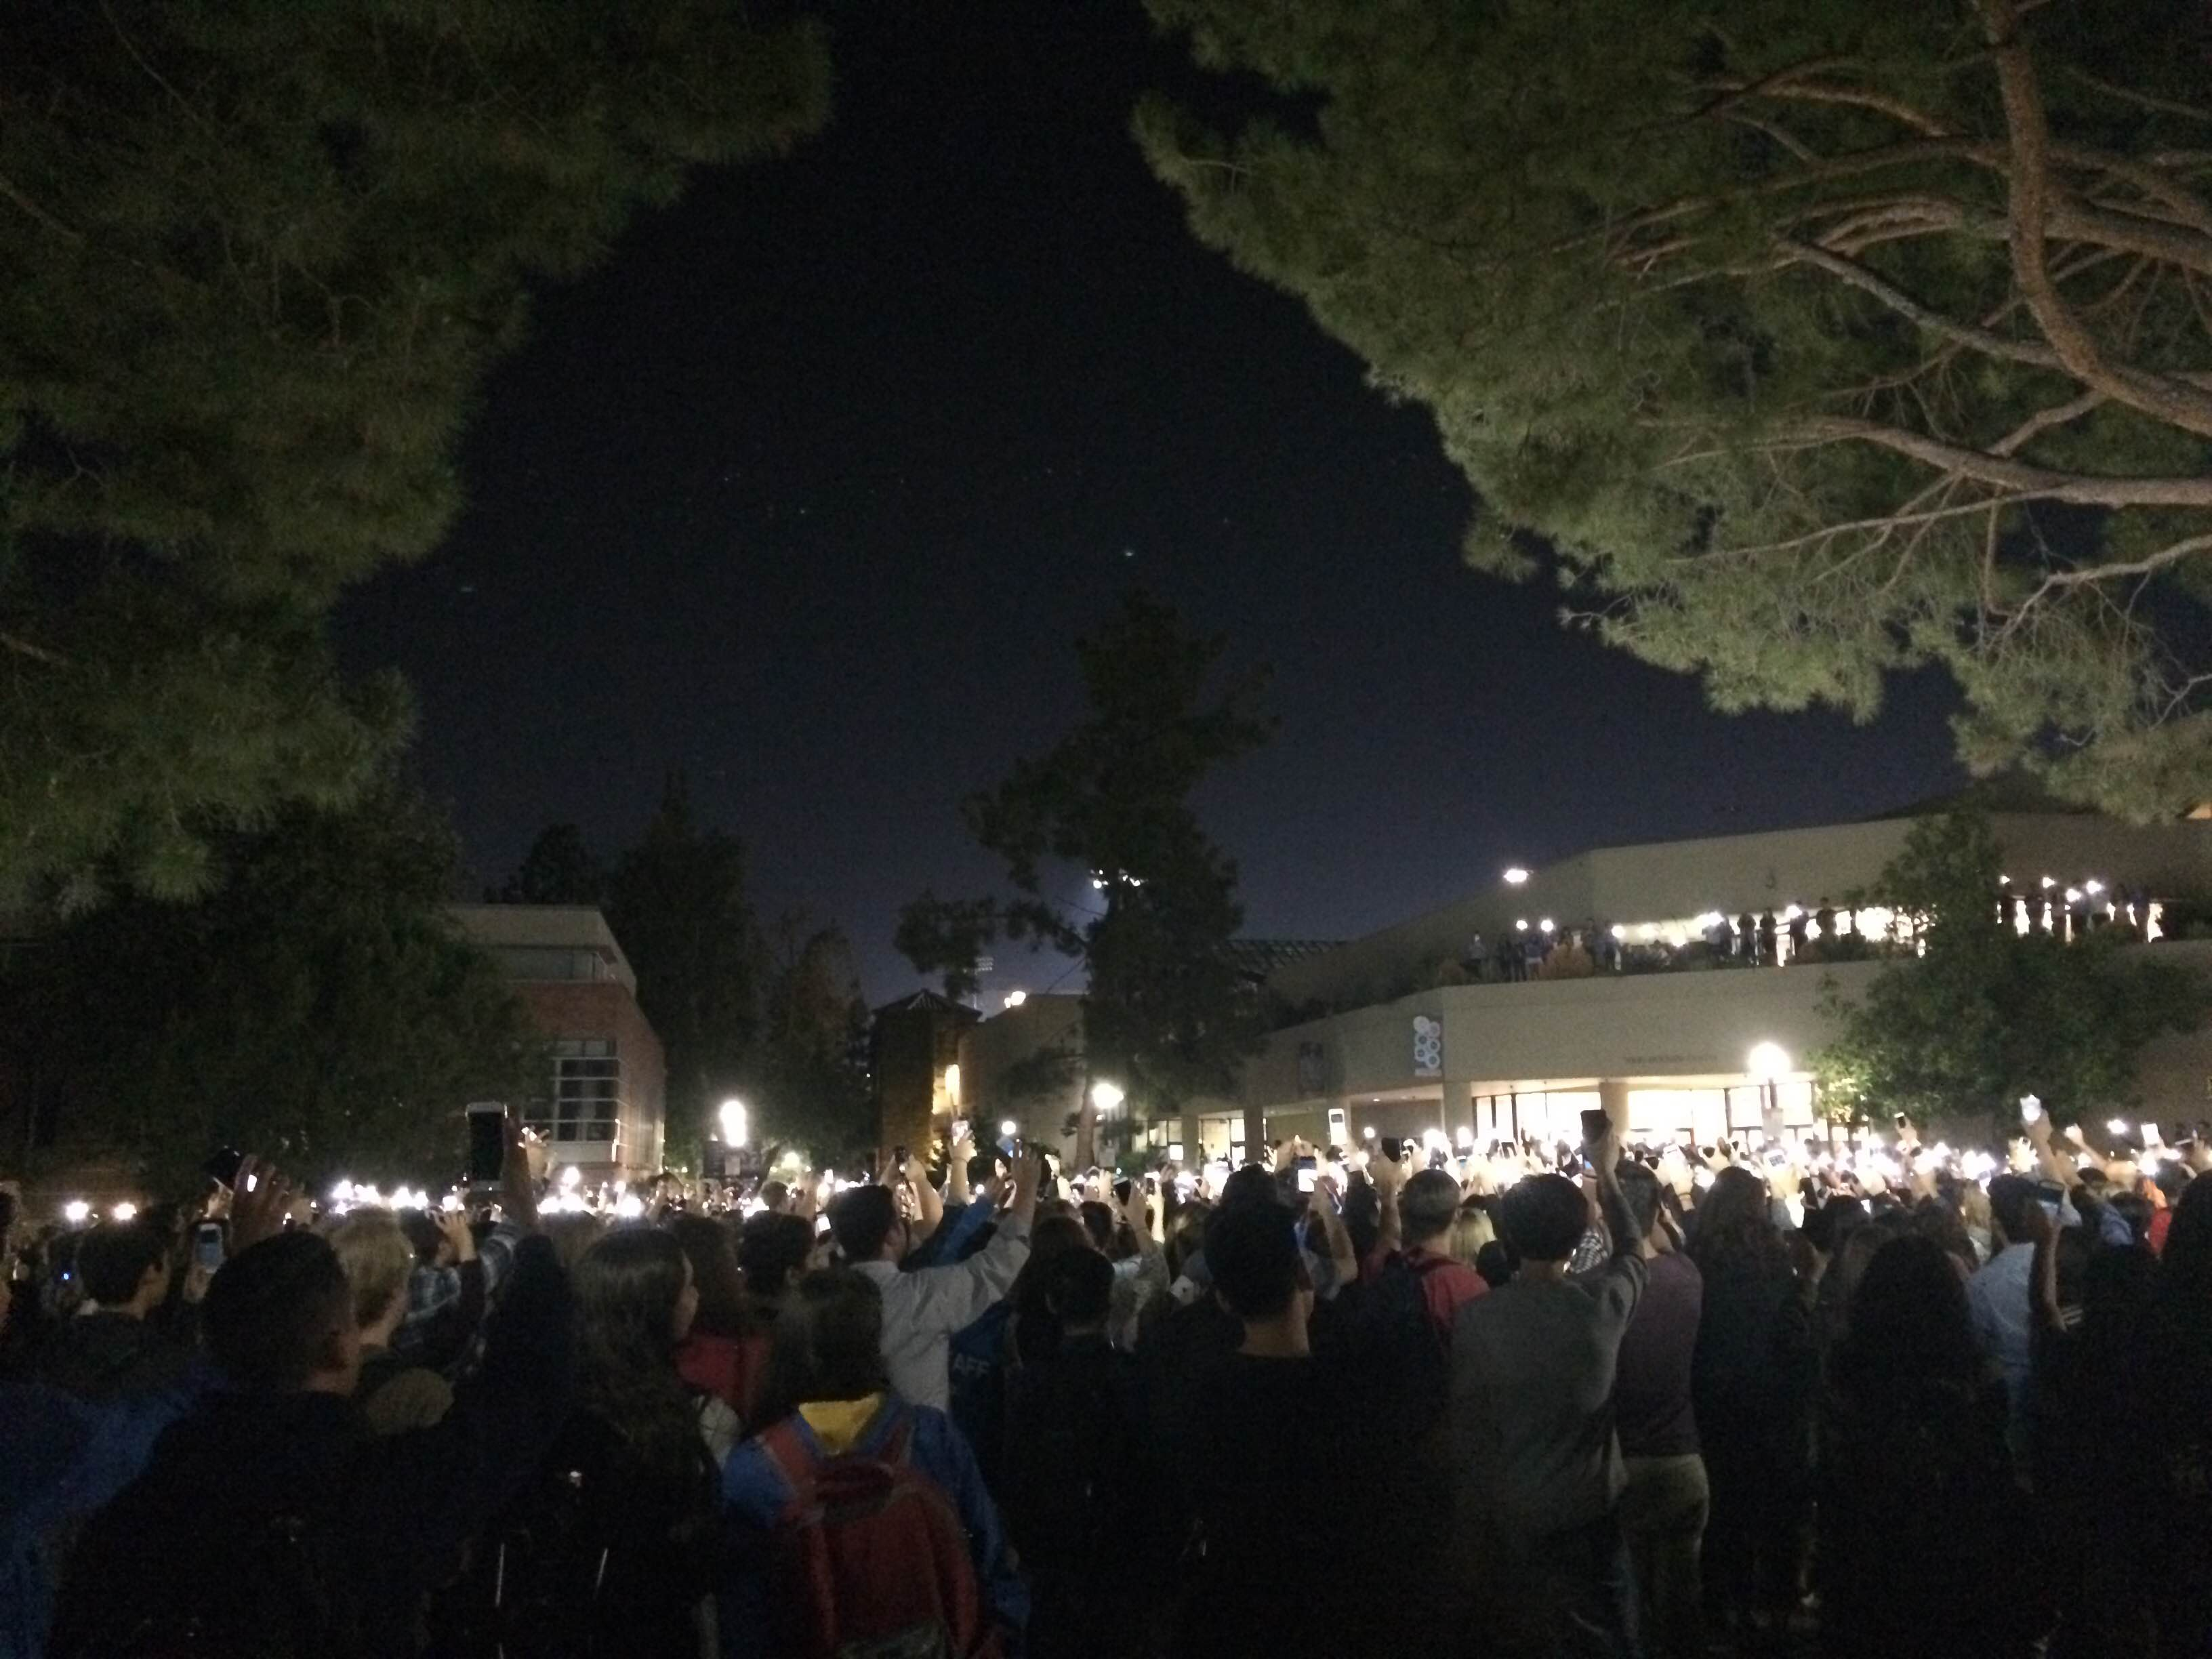 Letter From the Editor: A Response to the Events on June 1st